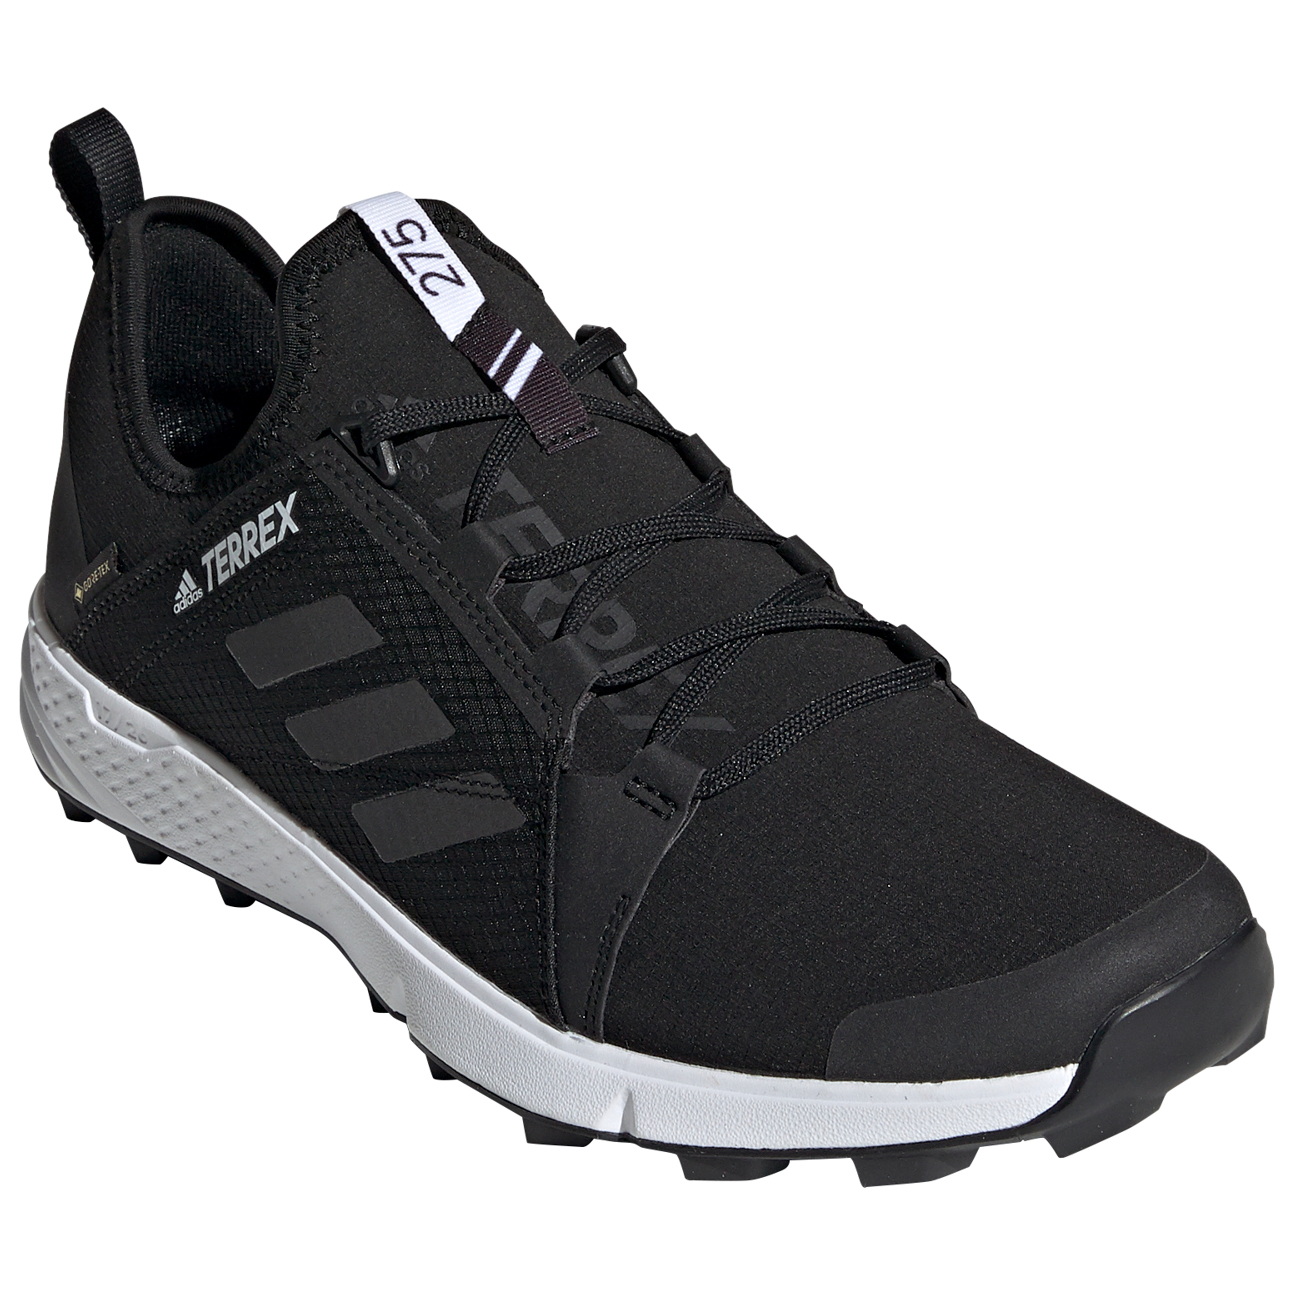 adidas TERREX Speed GTX Sko Herrer, core blackcore blackfootwear white